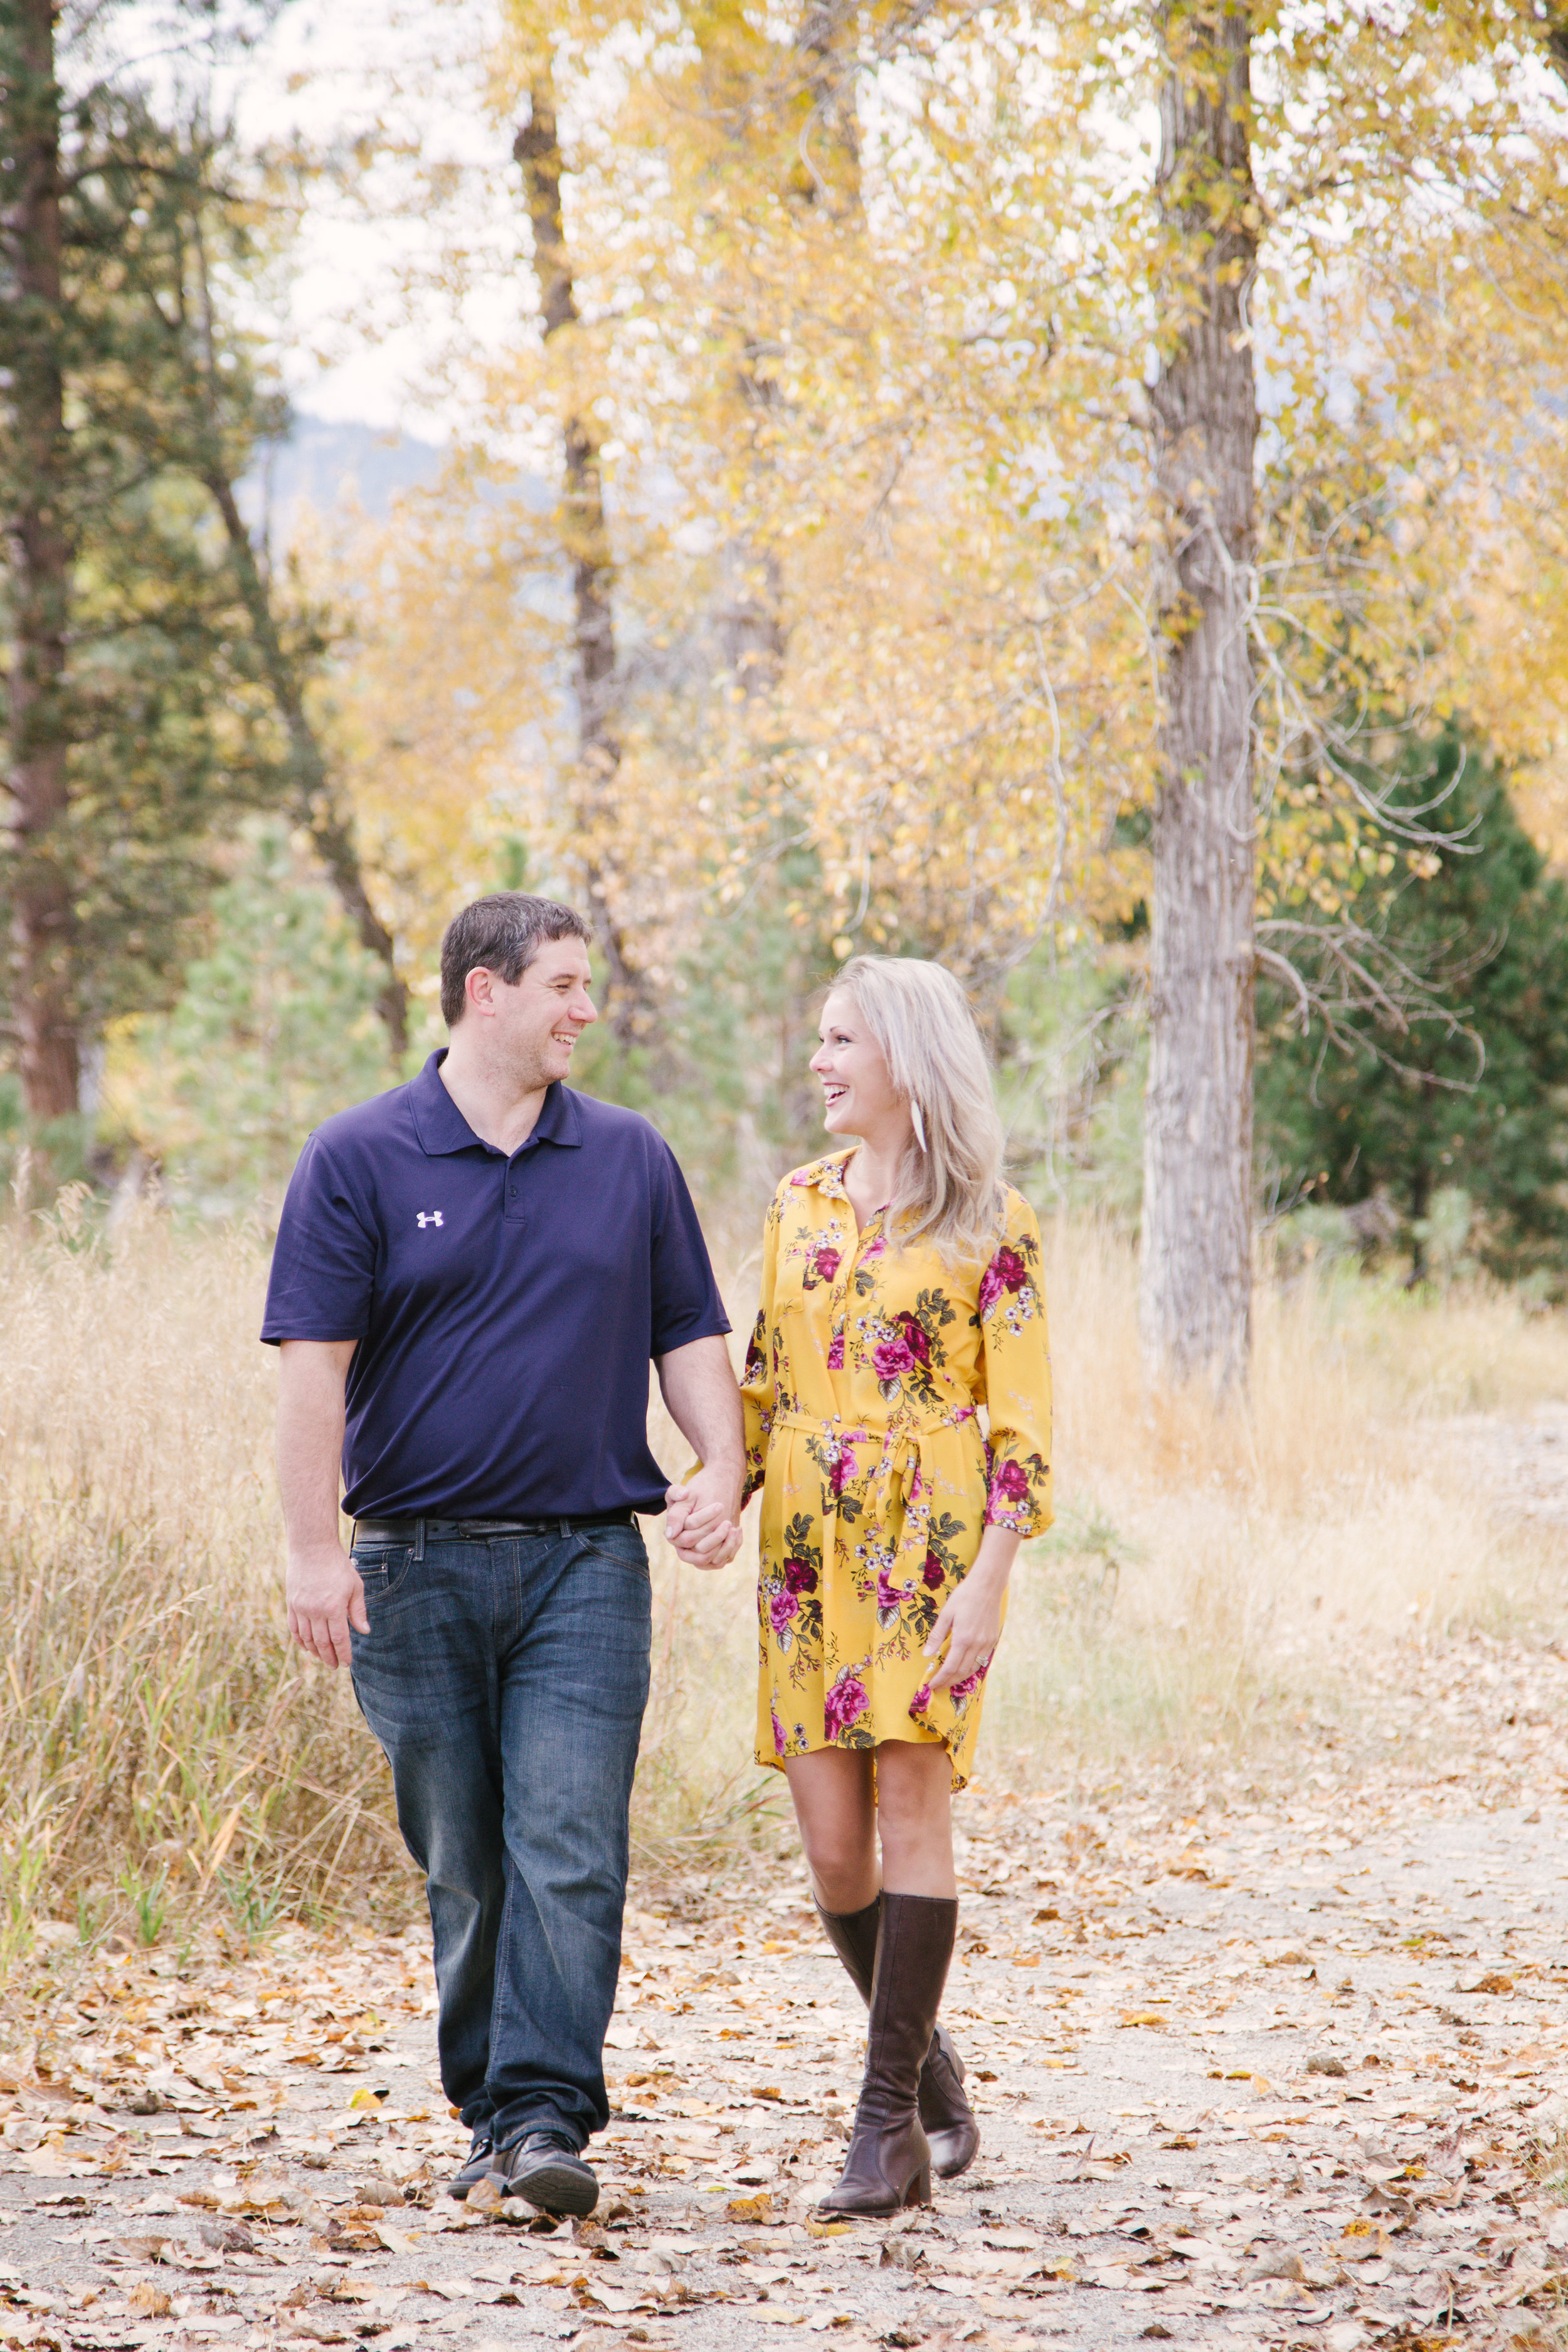 ashleytintingerphotography.com - Missoula Family Photographer - Laufenberg SP - 11.jpg